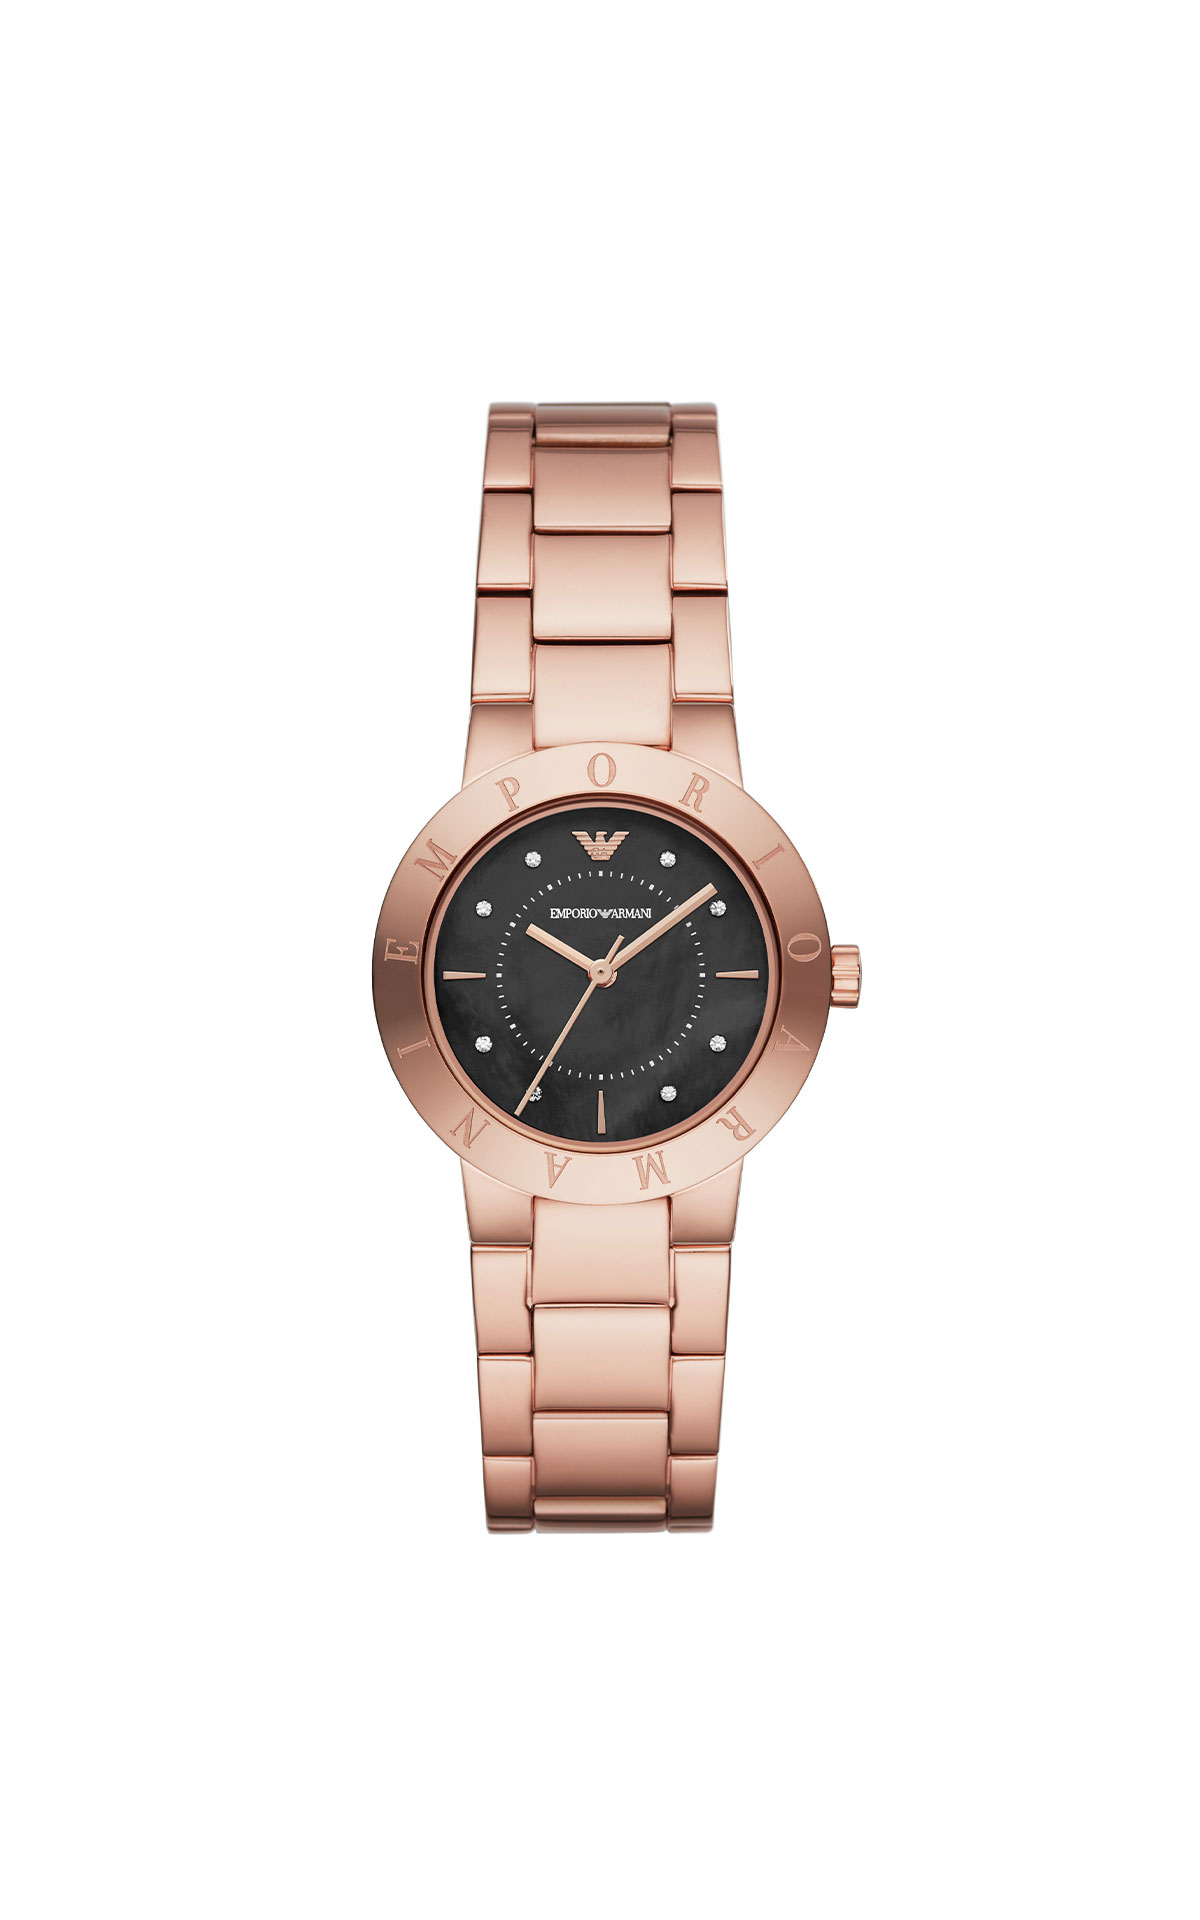 Armani Womens watch from Bicester Village